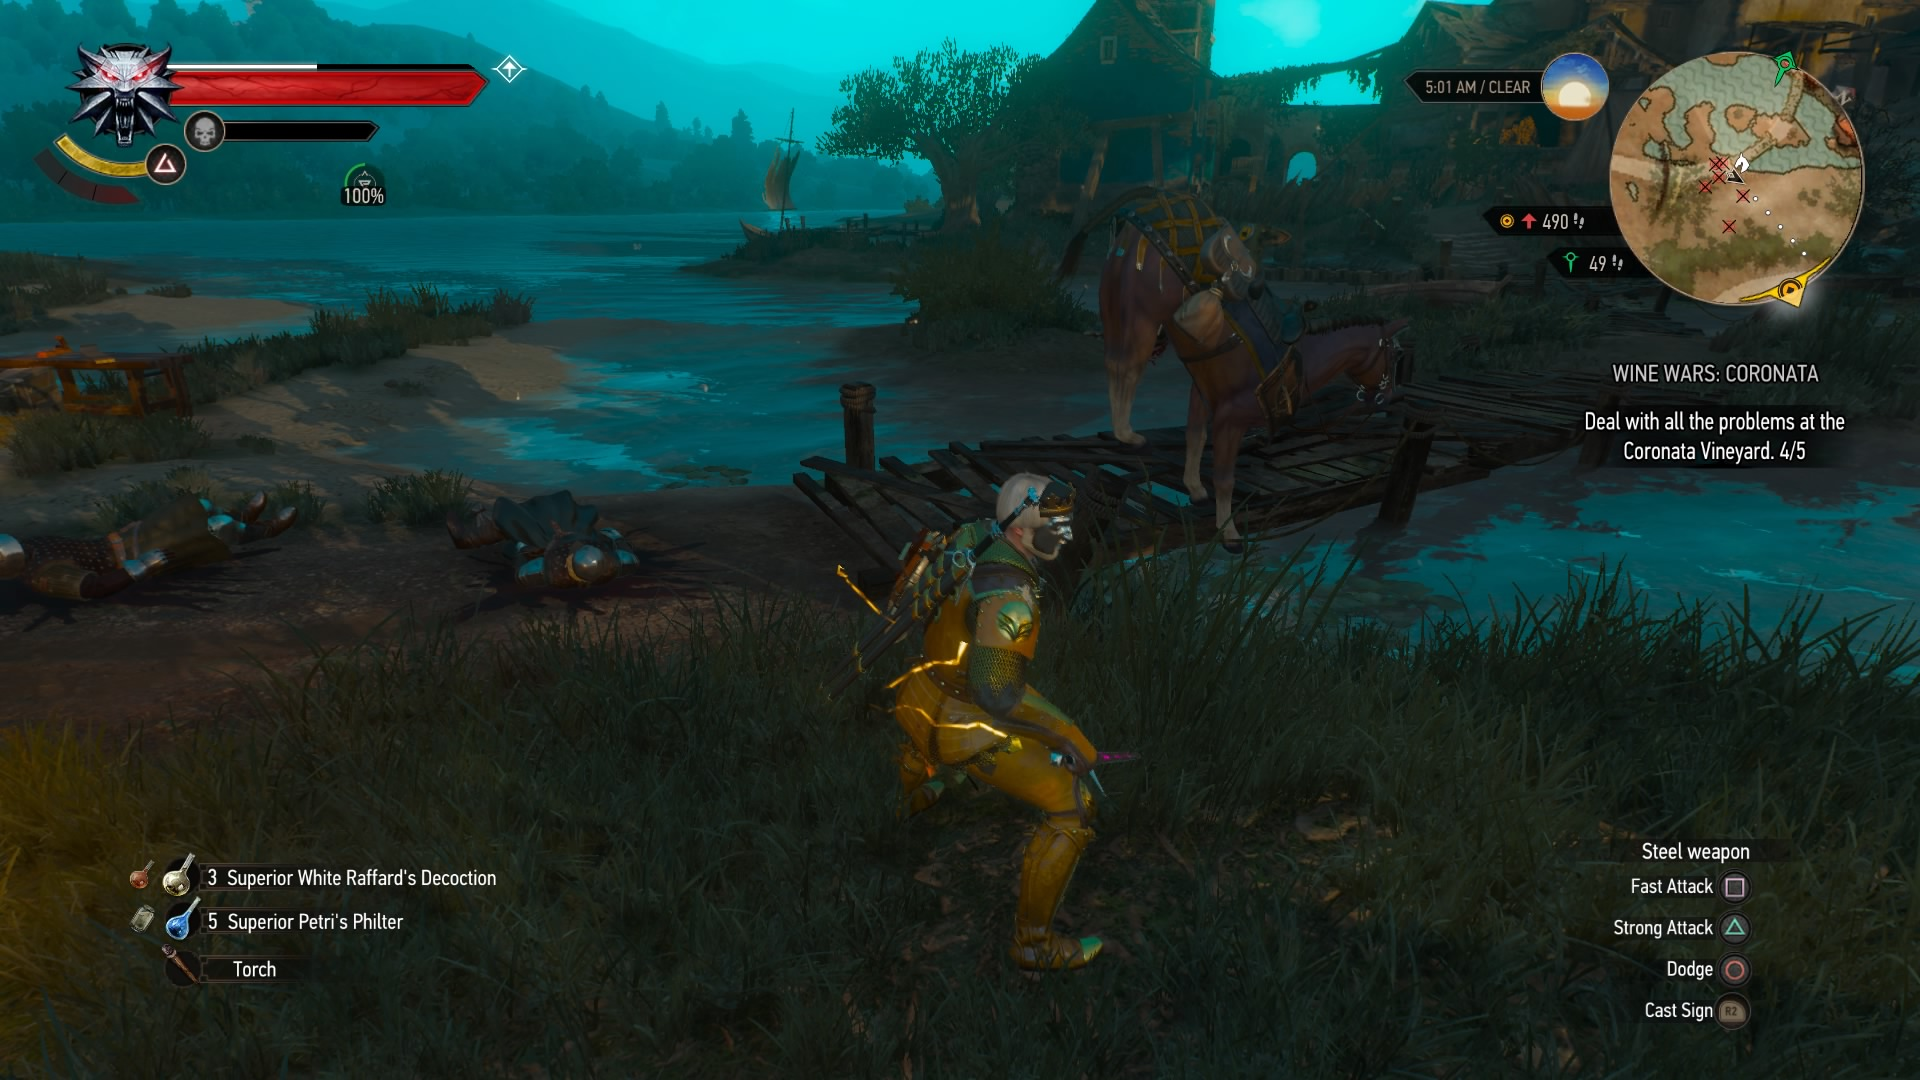 To have any hope of defeating The Hipless Horse of American folklore, Geralt must put to use the expanded mutation system, which not only grants him powerful new buffs, but also opens up new slots for old signs. The grandmaster witcher gear and the buffs from his new vineyard-cum-house are not only equally helpful, but also put to use the wealth of Florens he has likely accumulated during Wild Hunt and Hearts of Stone.